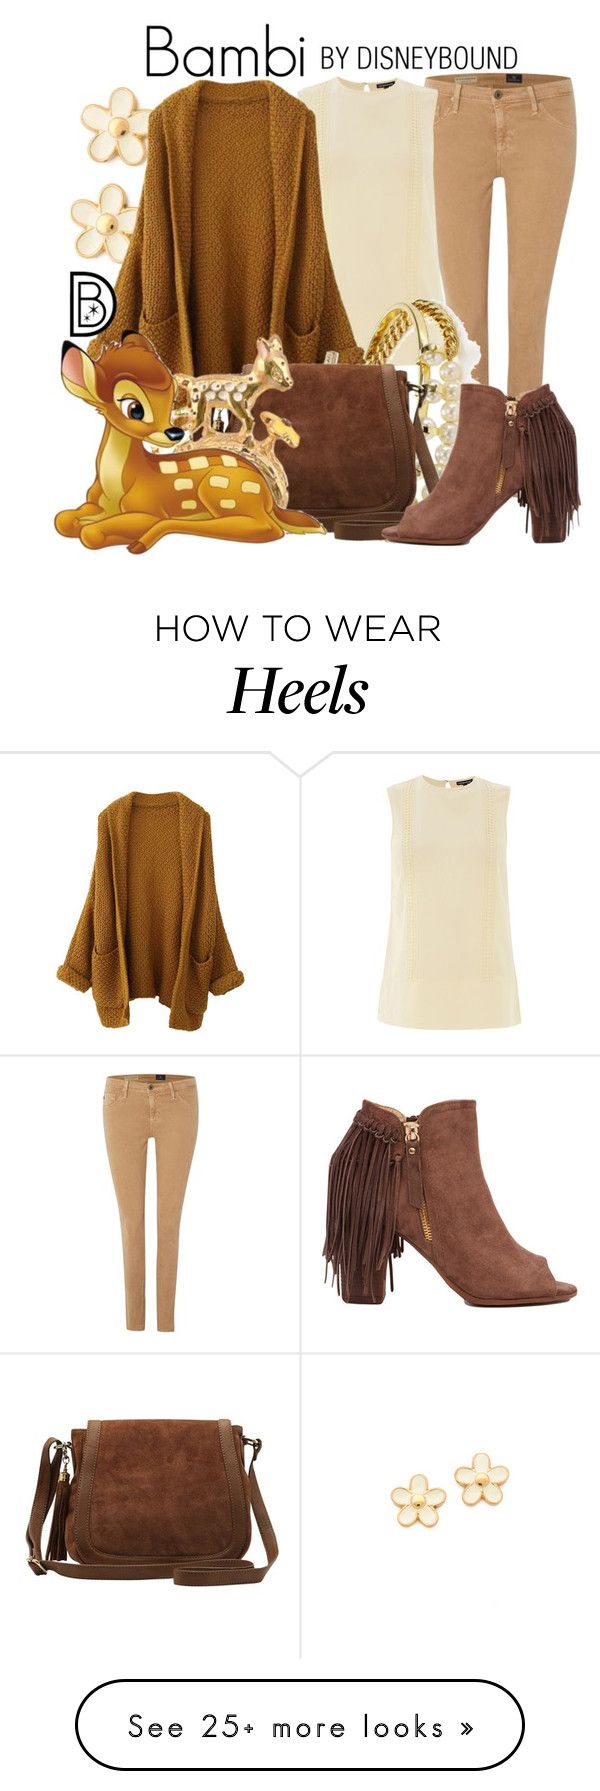 """""""Bambi"""" by leslieakay on Polyvore featuring mode, AG Adriano Goldschmied, Marc by Marc Jacobs, Warehouse, BaubleBar, M&Co, Akira, disney, disneybound et disneycharacter"""